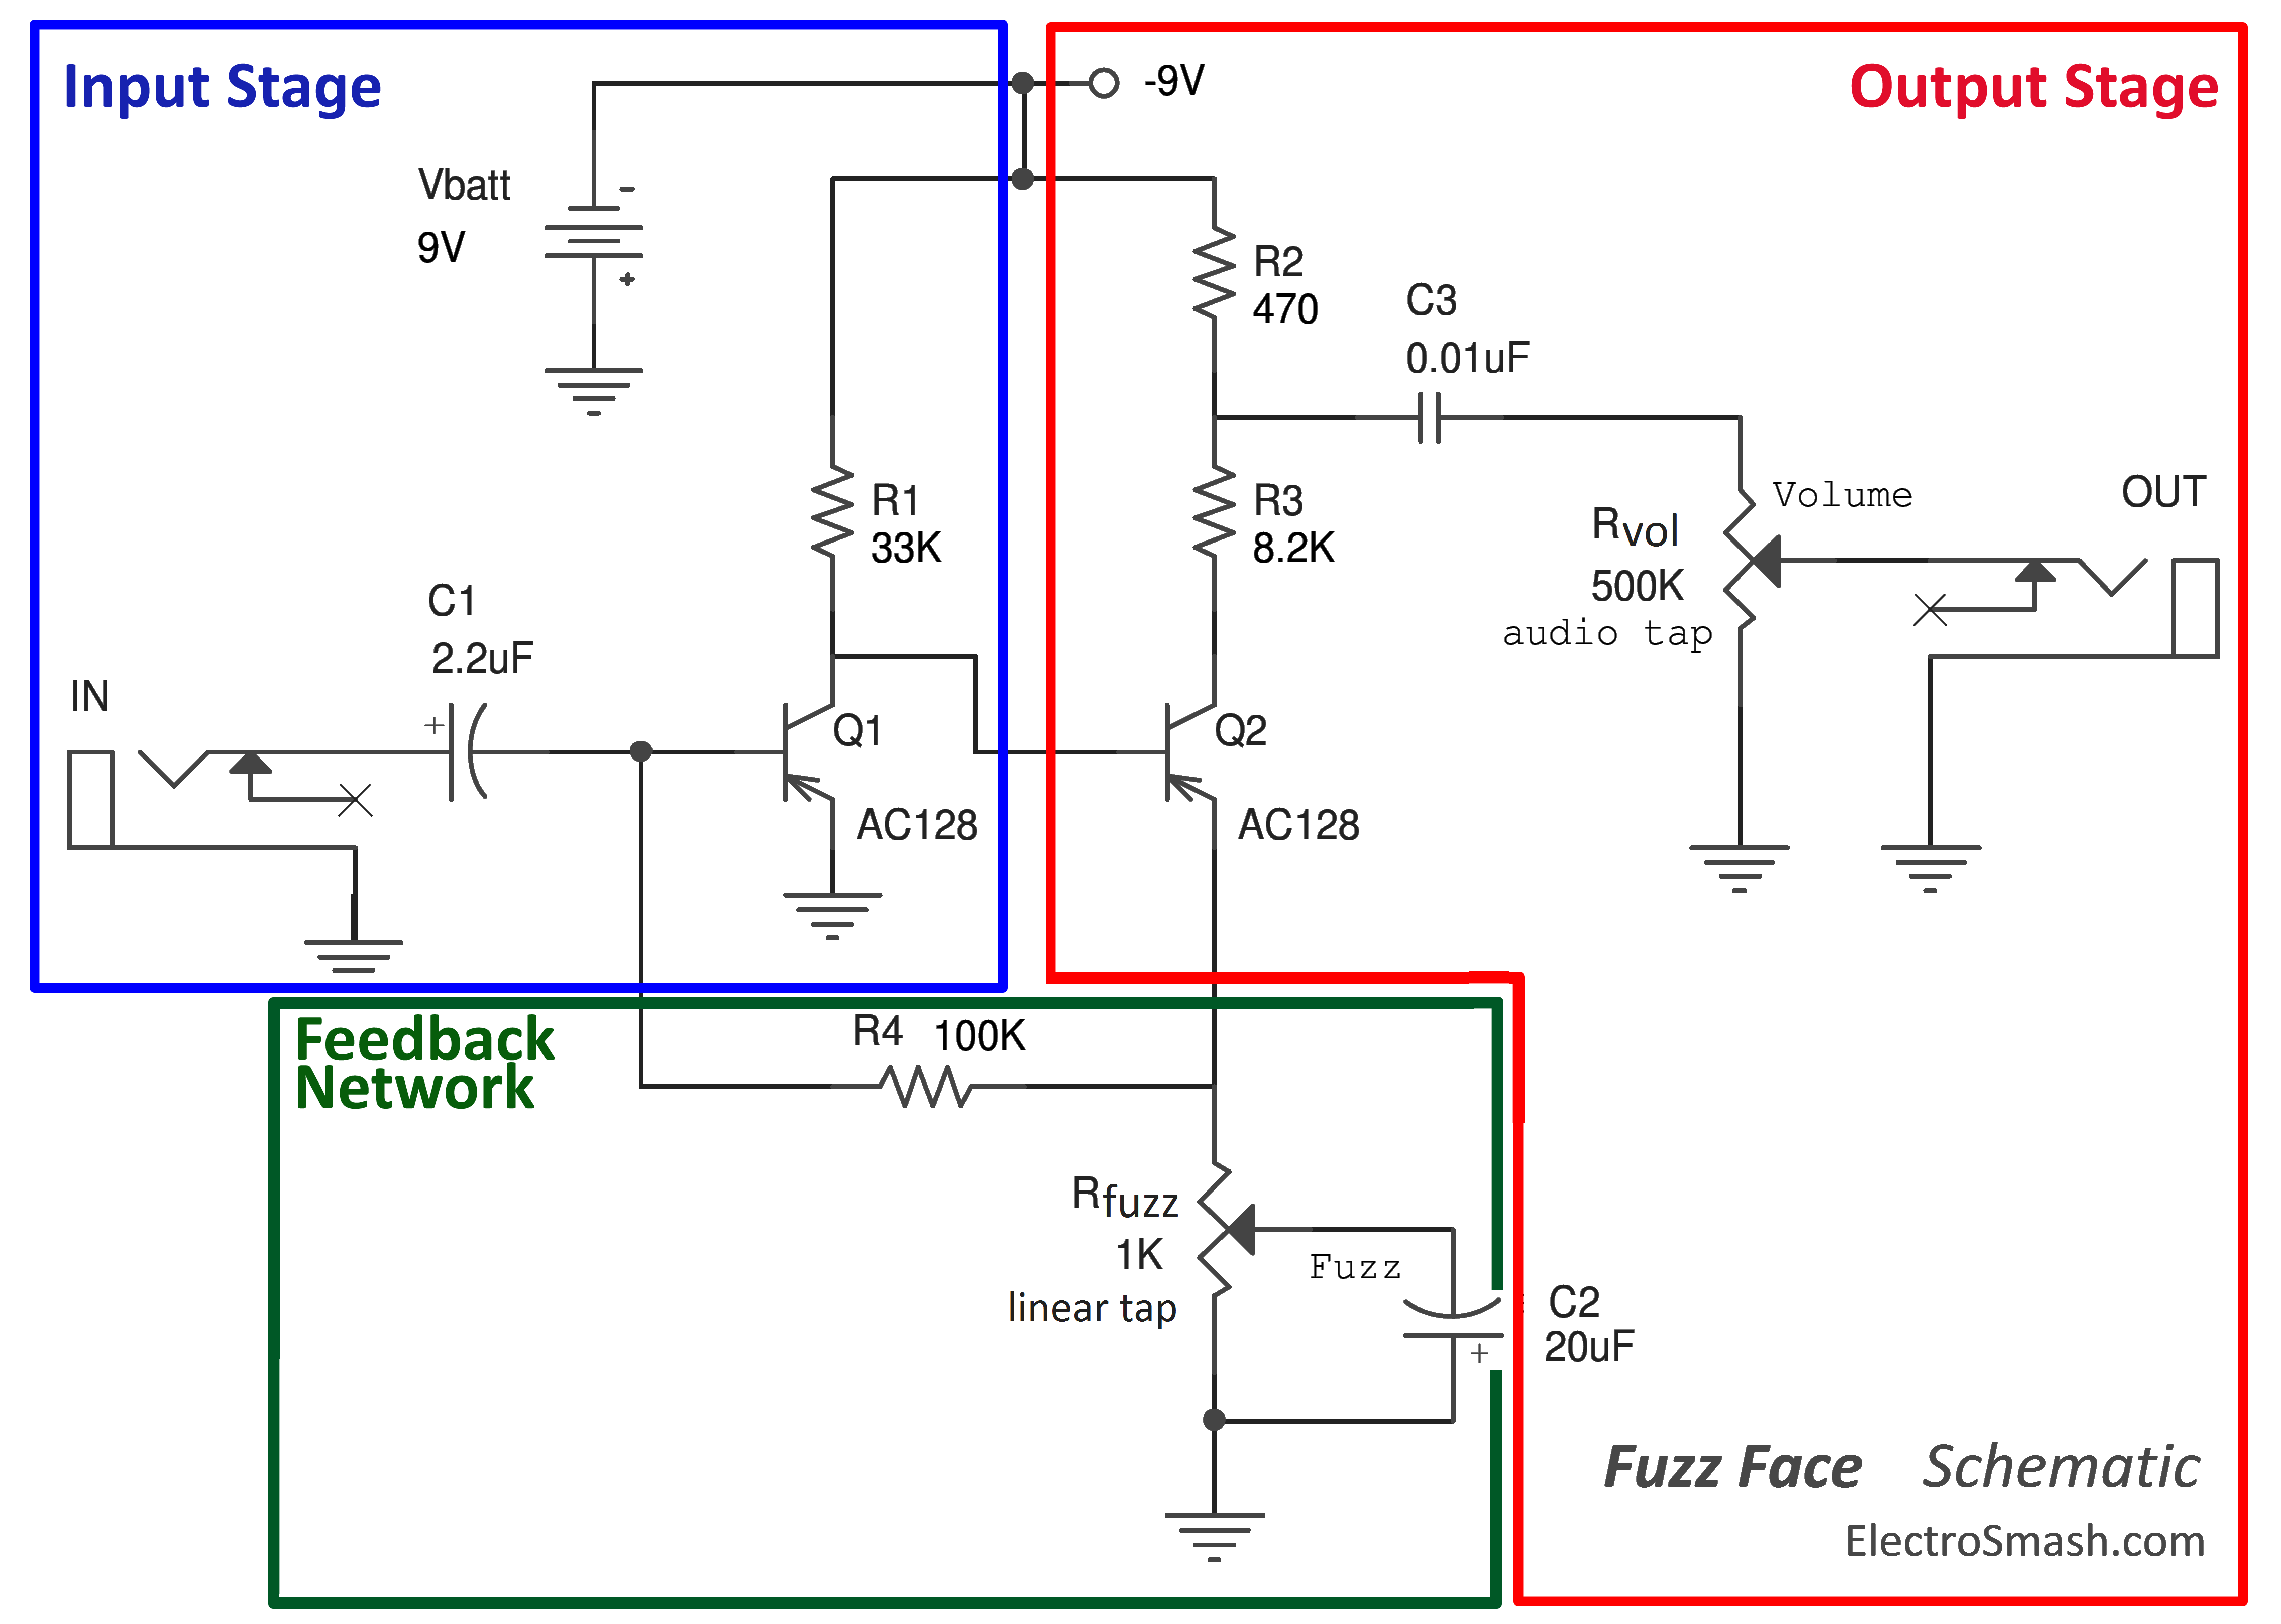 fuzz face original schematic parts electrosmash fuzz face analysis fuzz face wiring diagram at soozxer.org